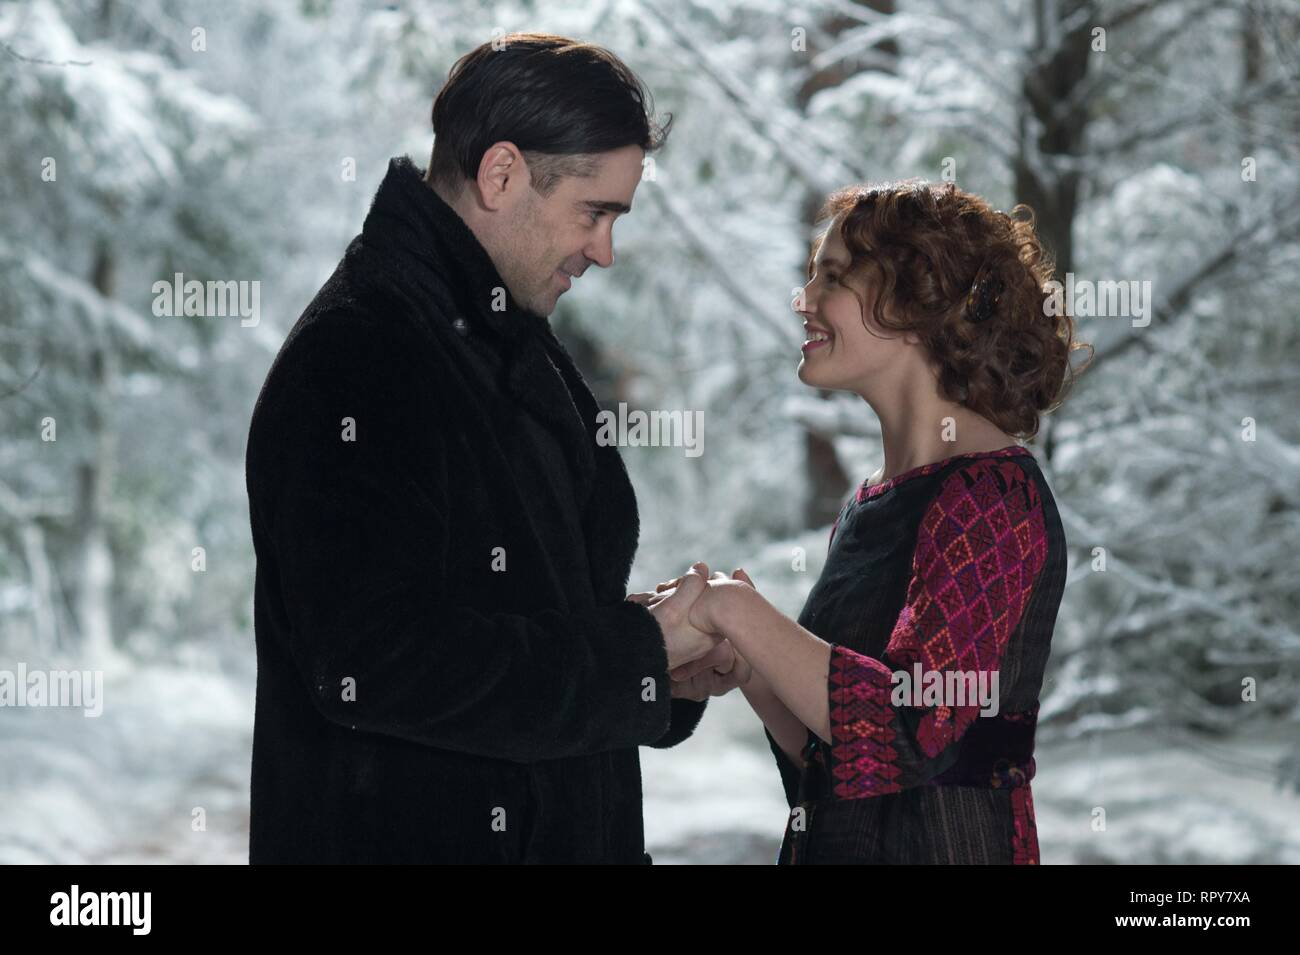 FARRELL,FINDLAY, A NEW YORK WINTER'S TALE, 2014 - Stock Image